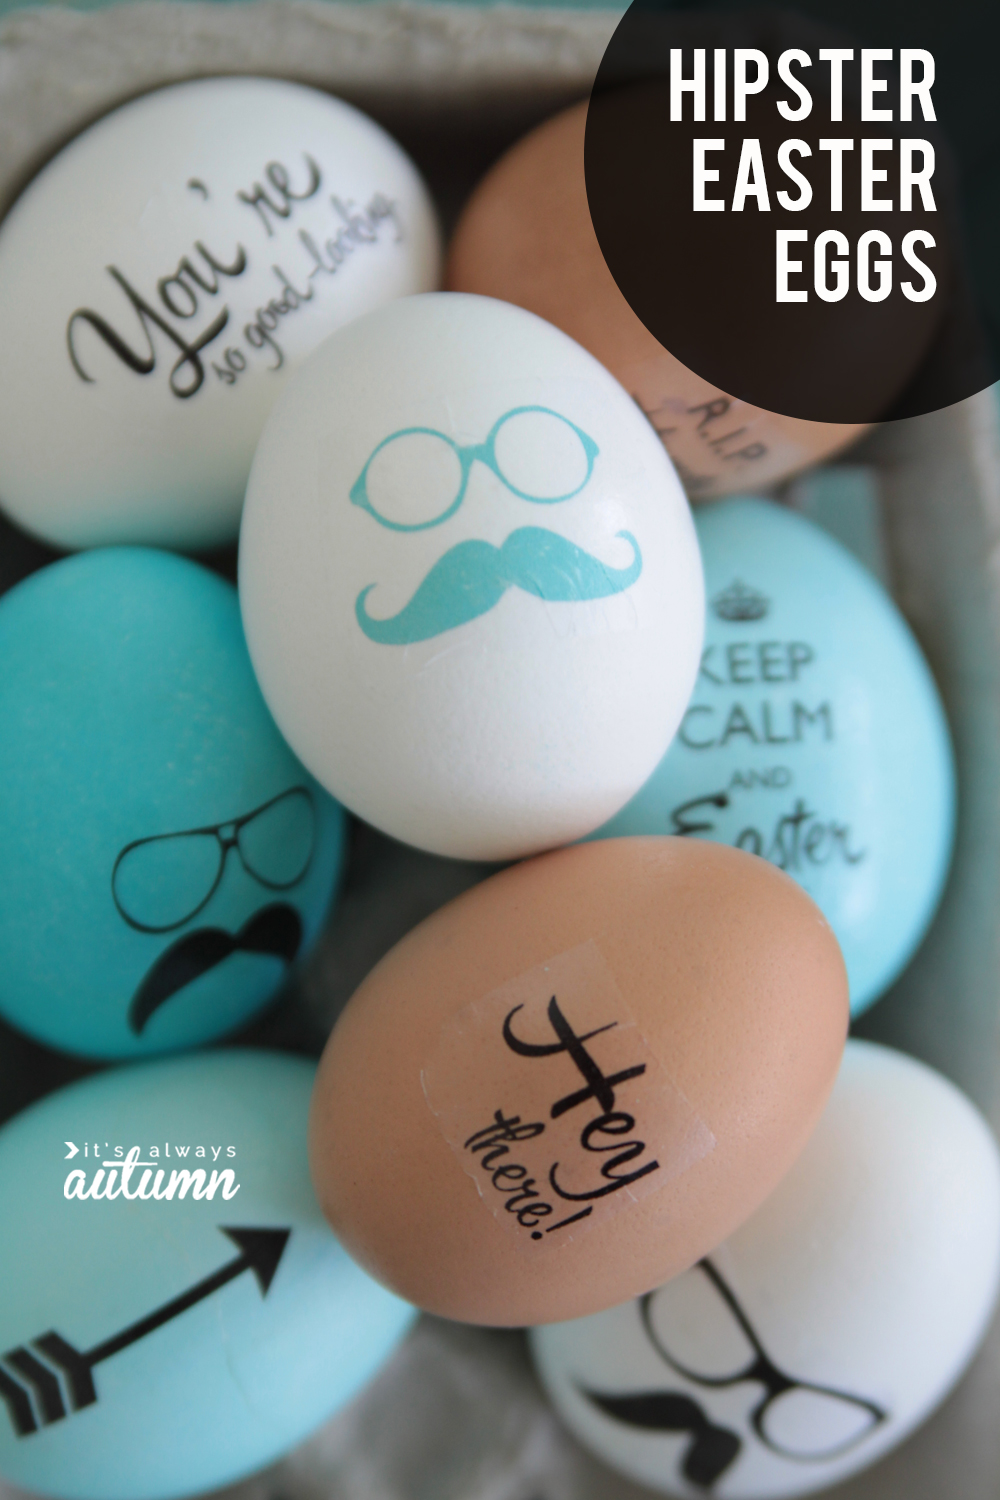 Decorate Easter eggs with cute hipster sayings using temporary tattoo paper!